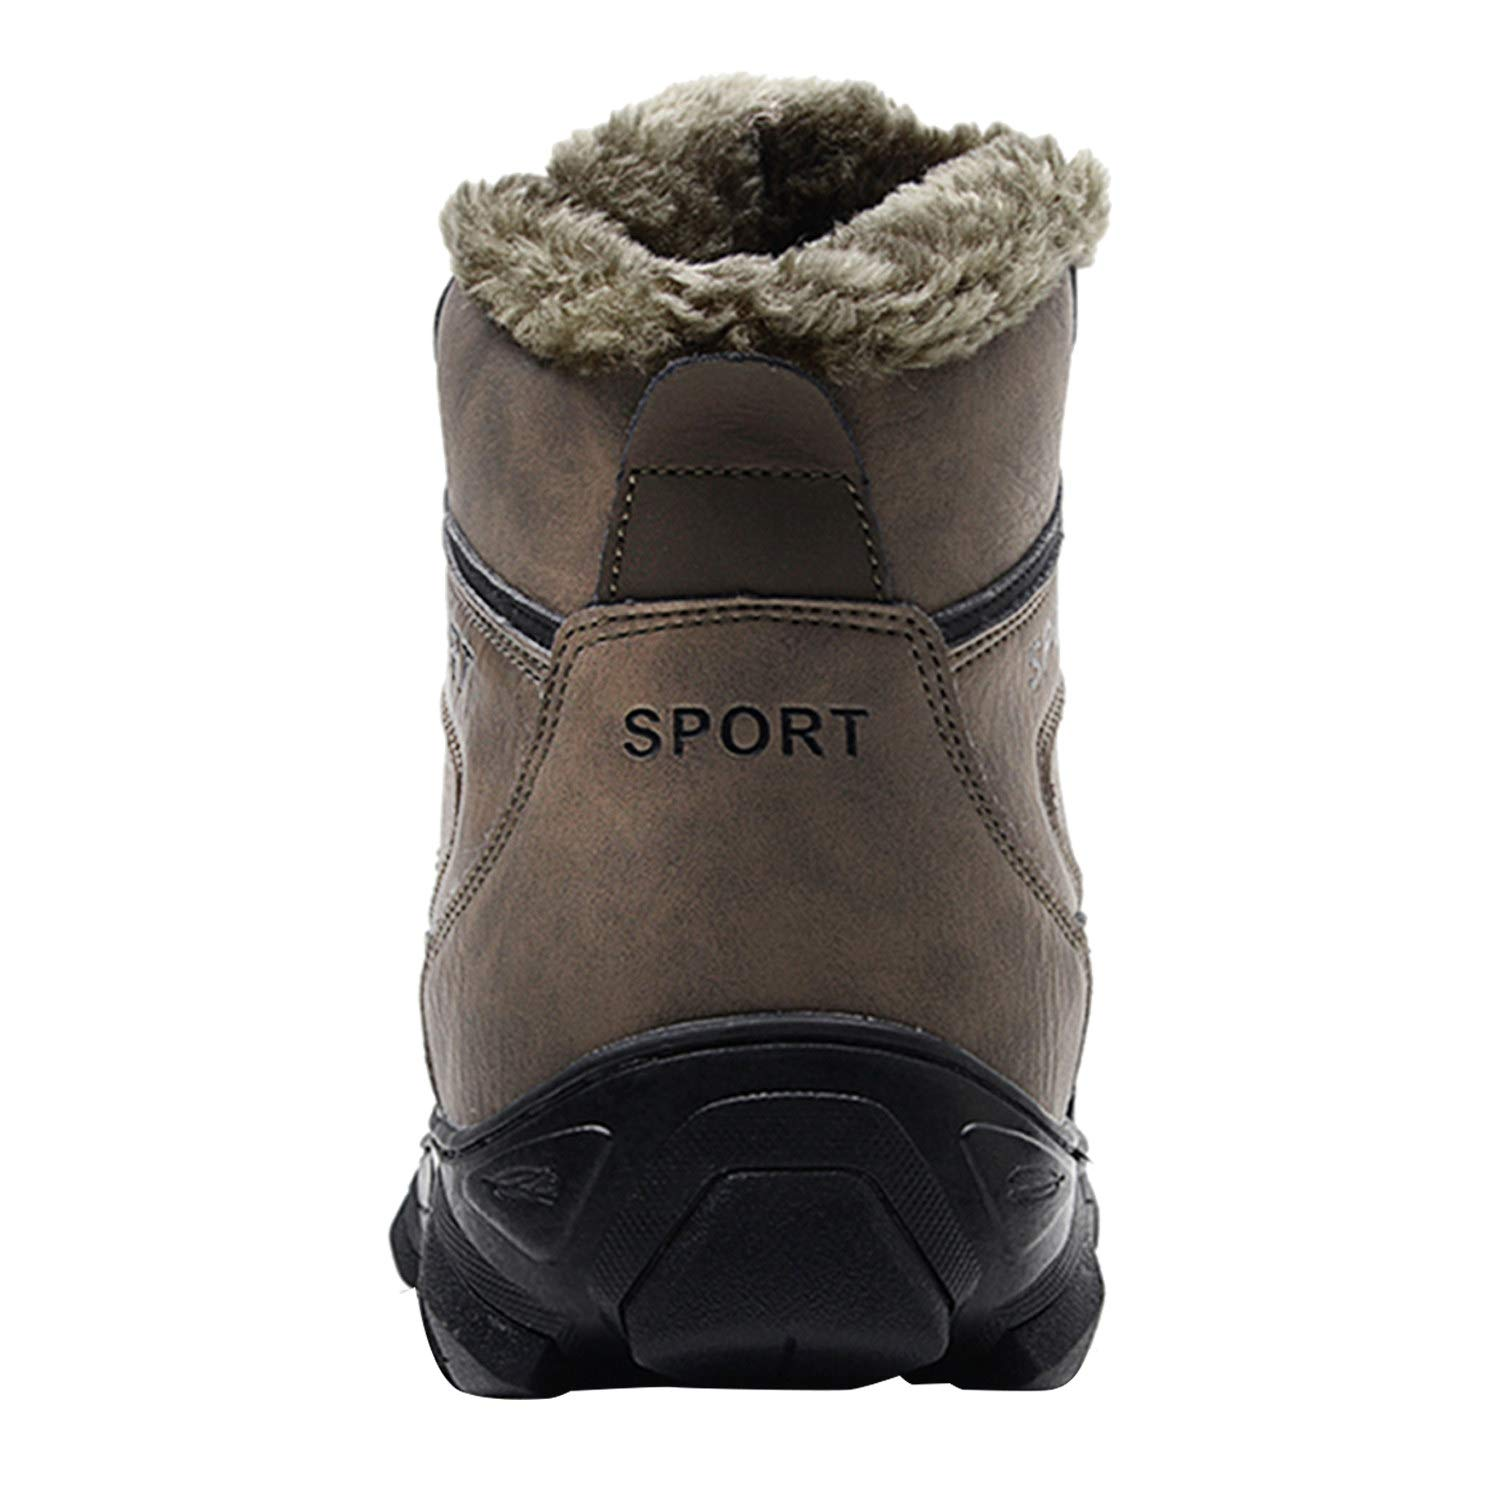 Barerun Winter Mens Snow Boots for Men Fur Lining Leather Rubber Sole Ankle Booties